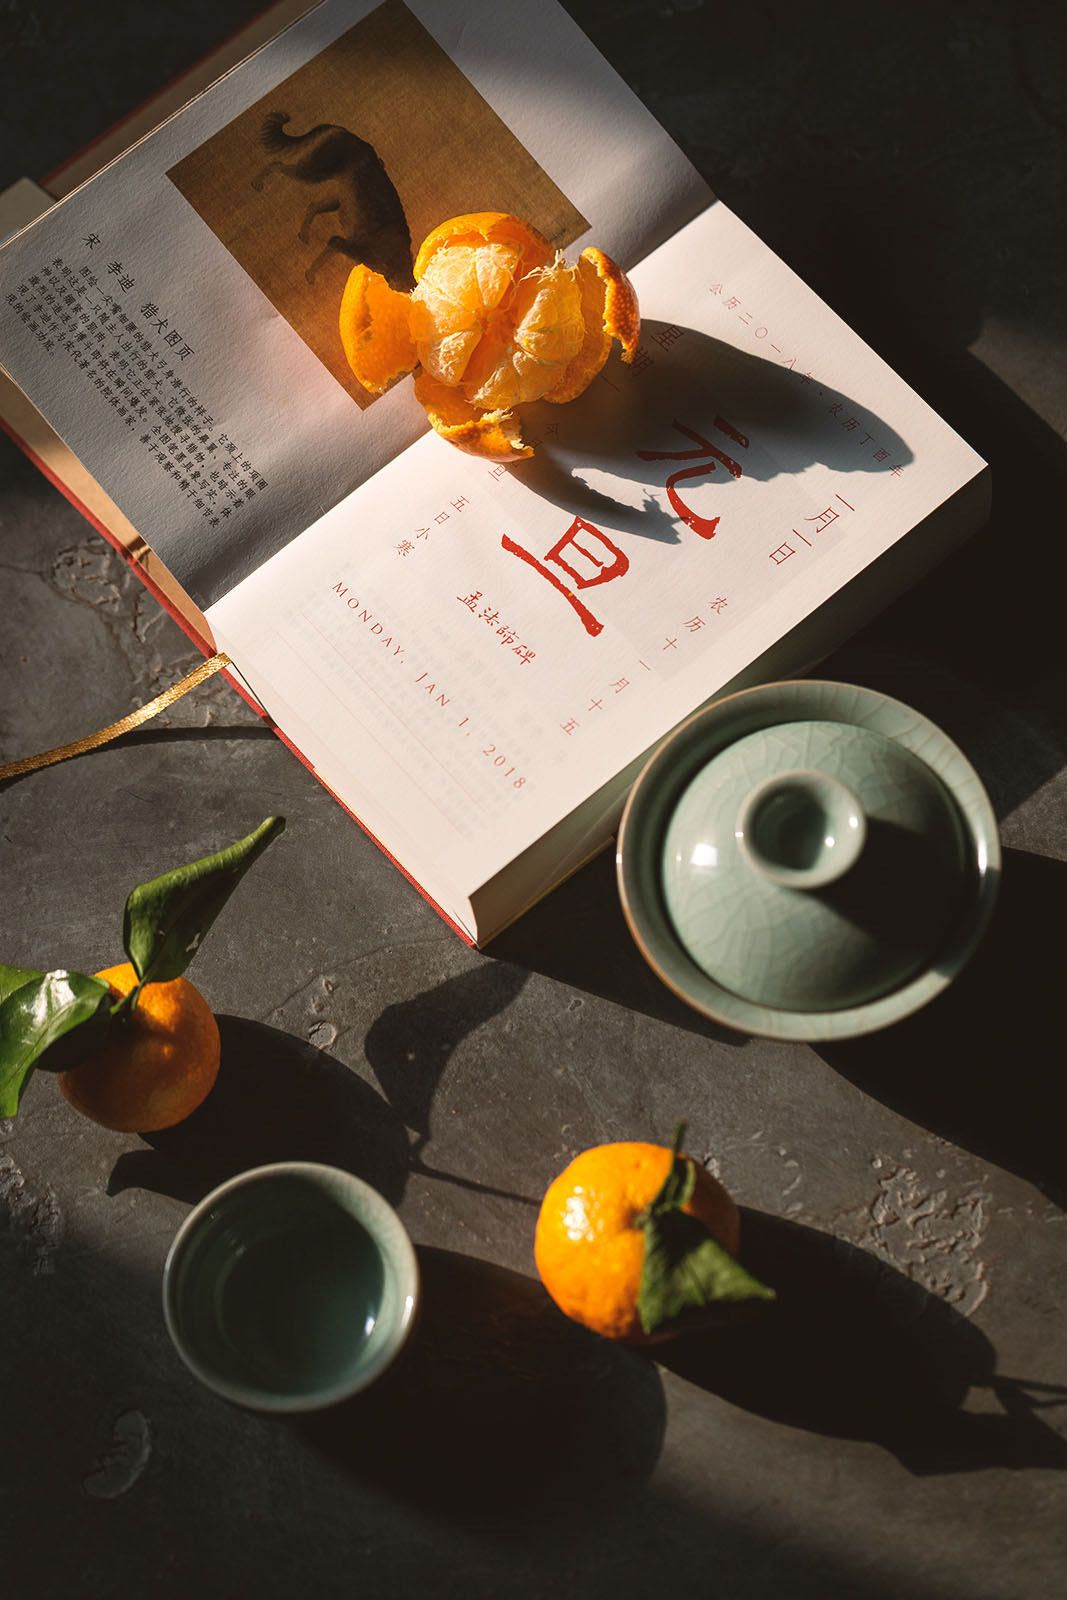 Untitled 故宫日历 Food photography, Chinese tea, Candle jars